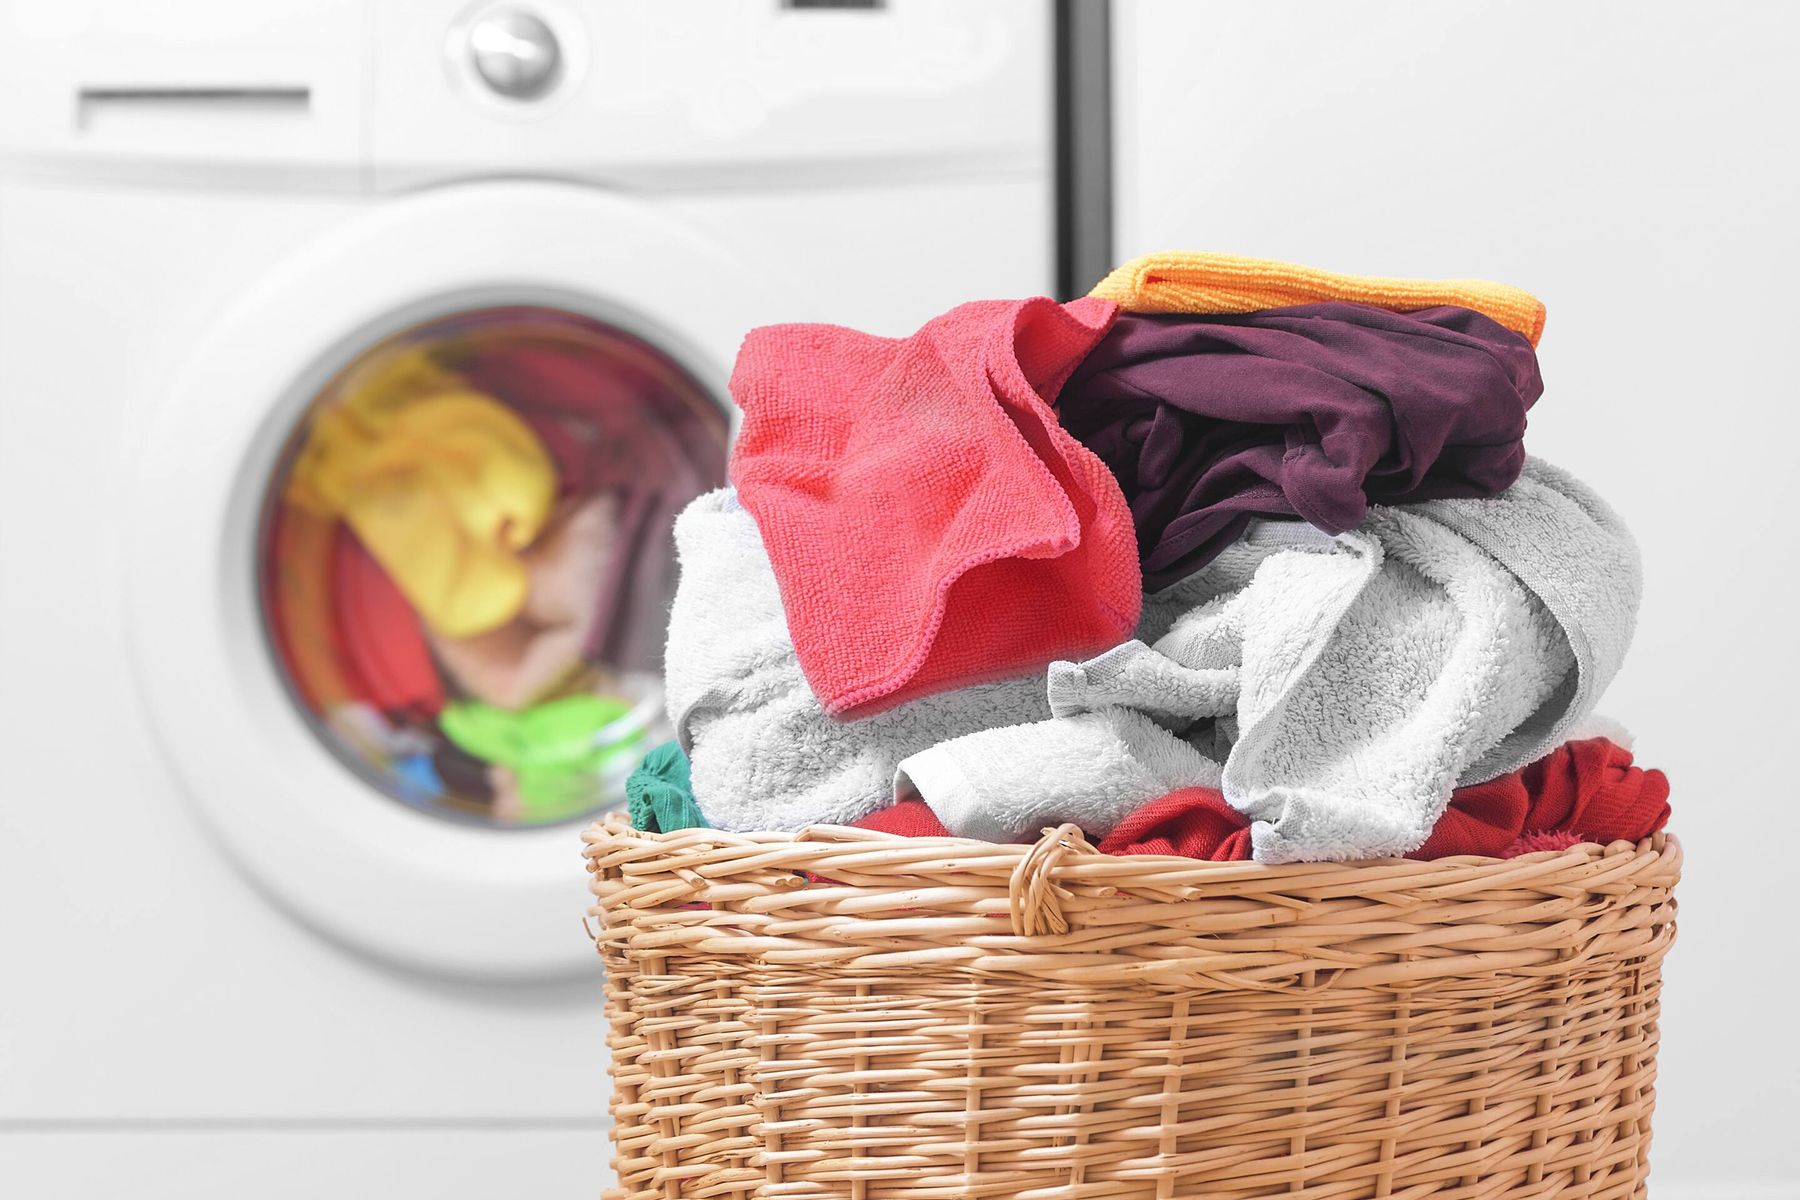 Colourful laundry basket for tips to make laundry easier